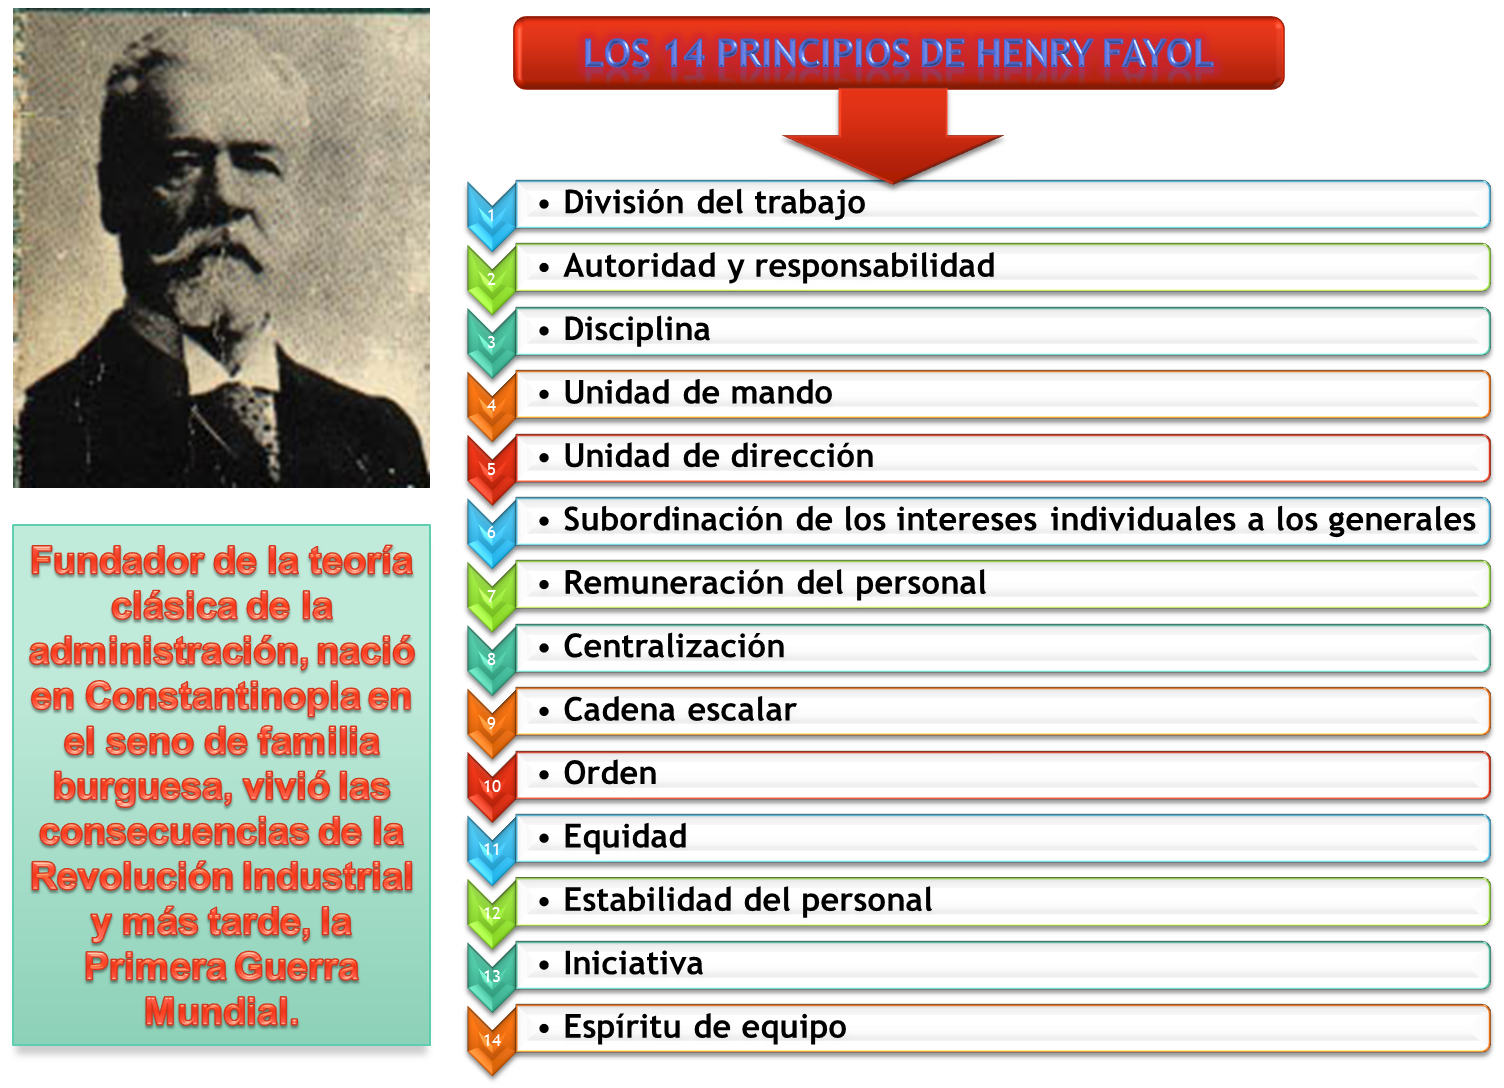 henri fayol principals What are the 14 principles of management description the 14 management  principles from henri fayol (1841-1925) are: division of work.